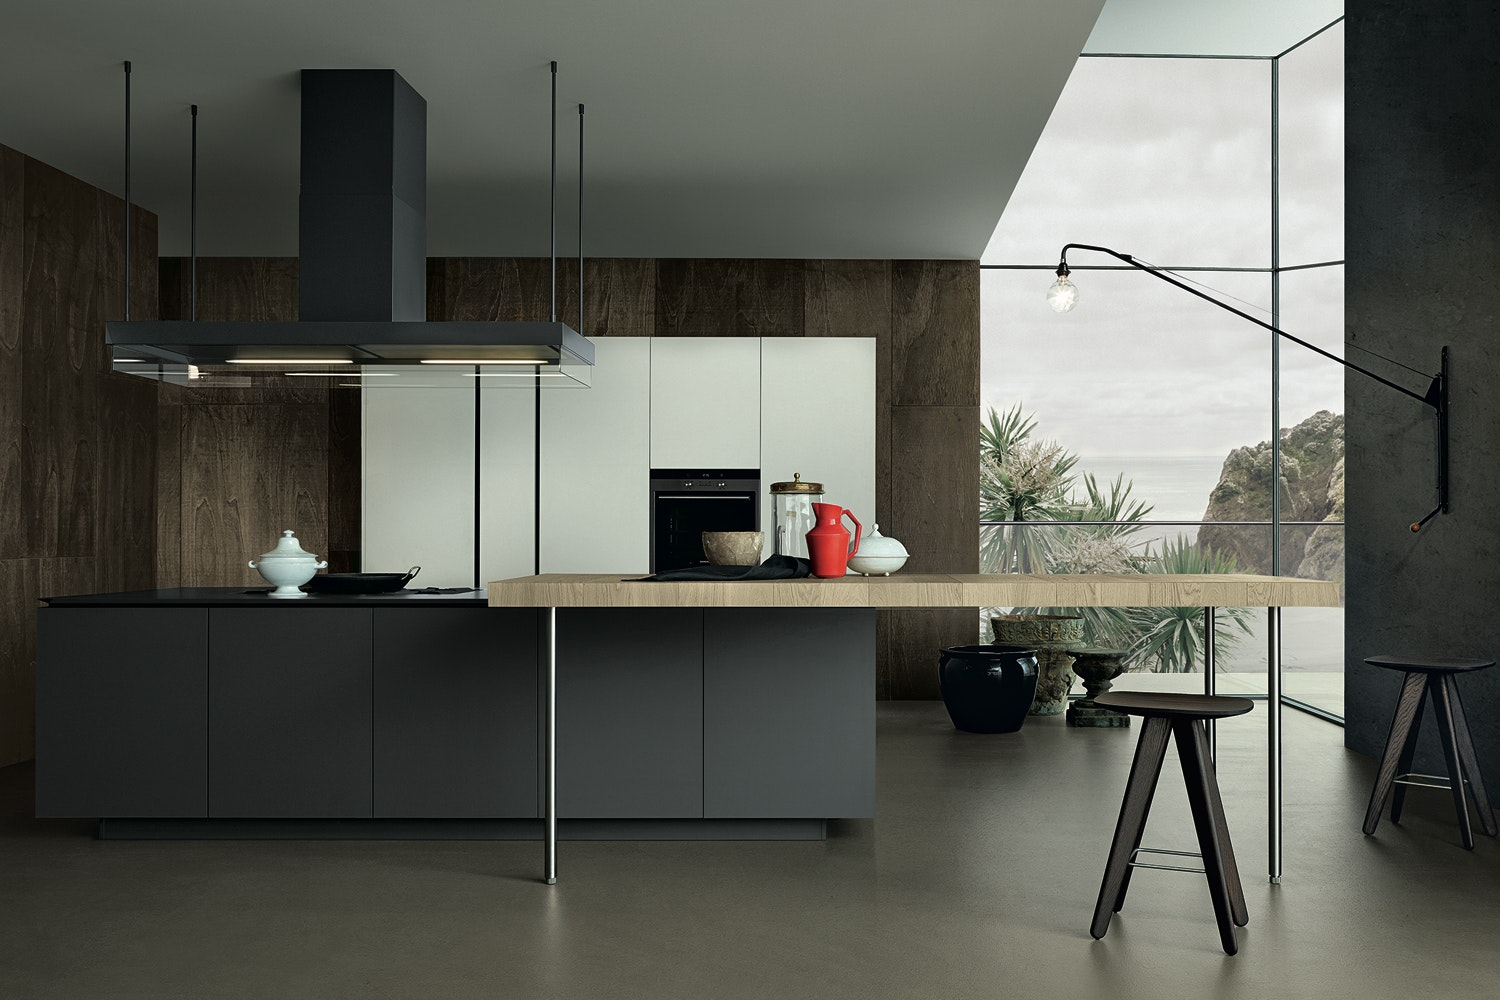 Artex Kitchen by Poliform